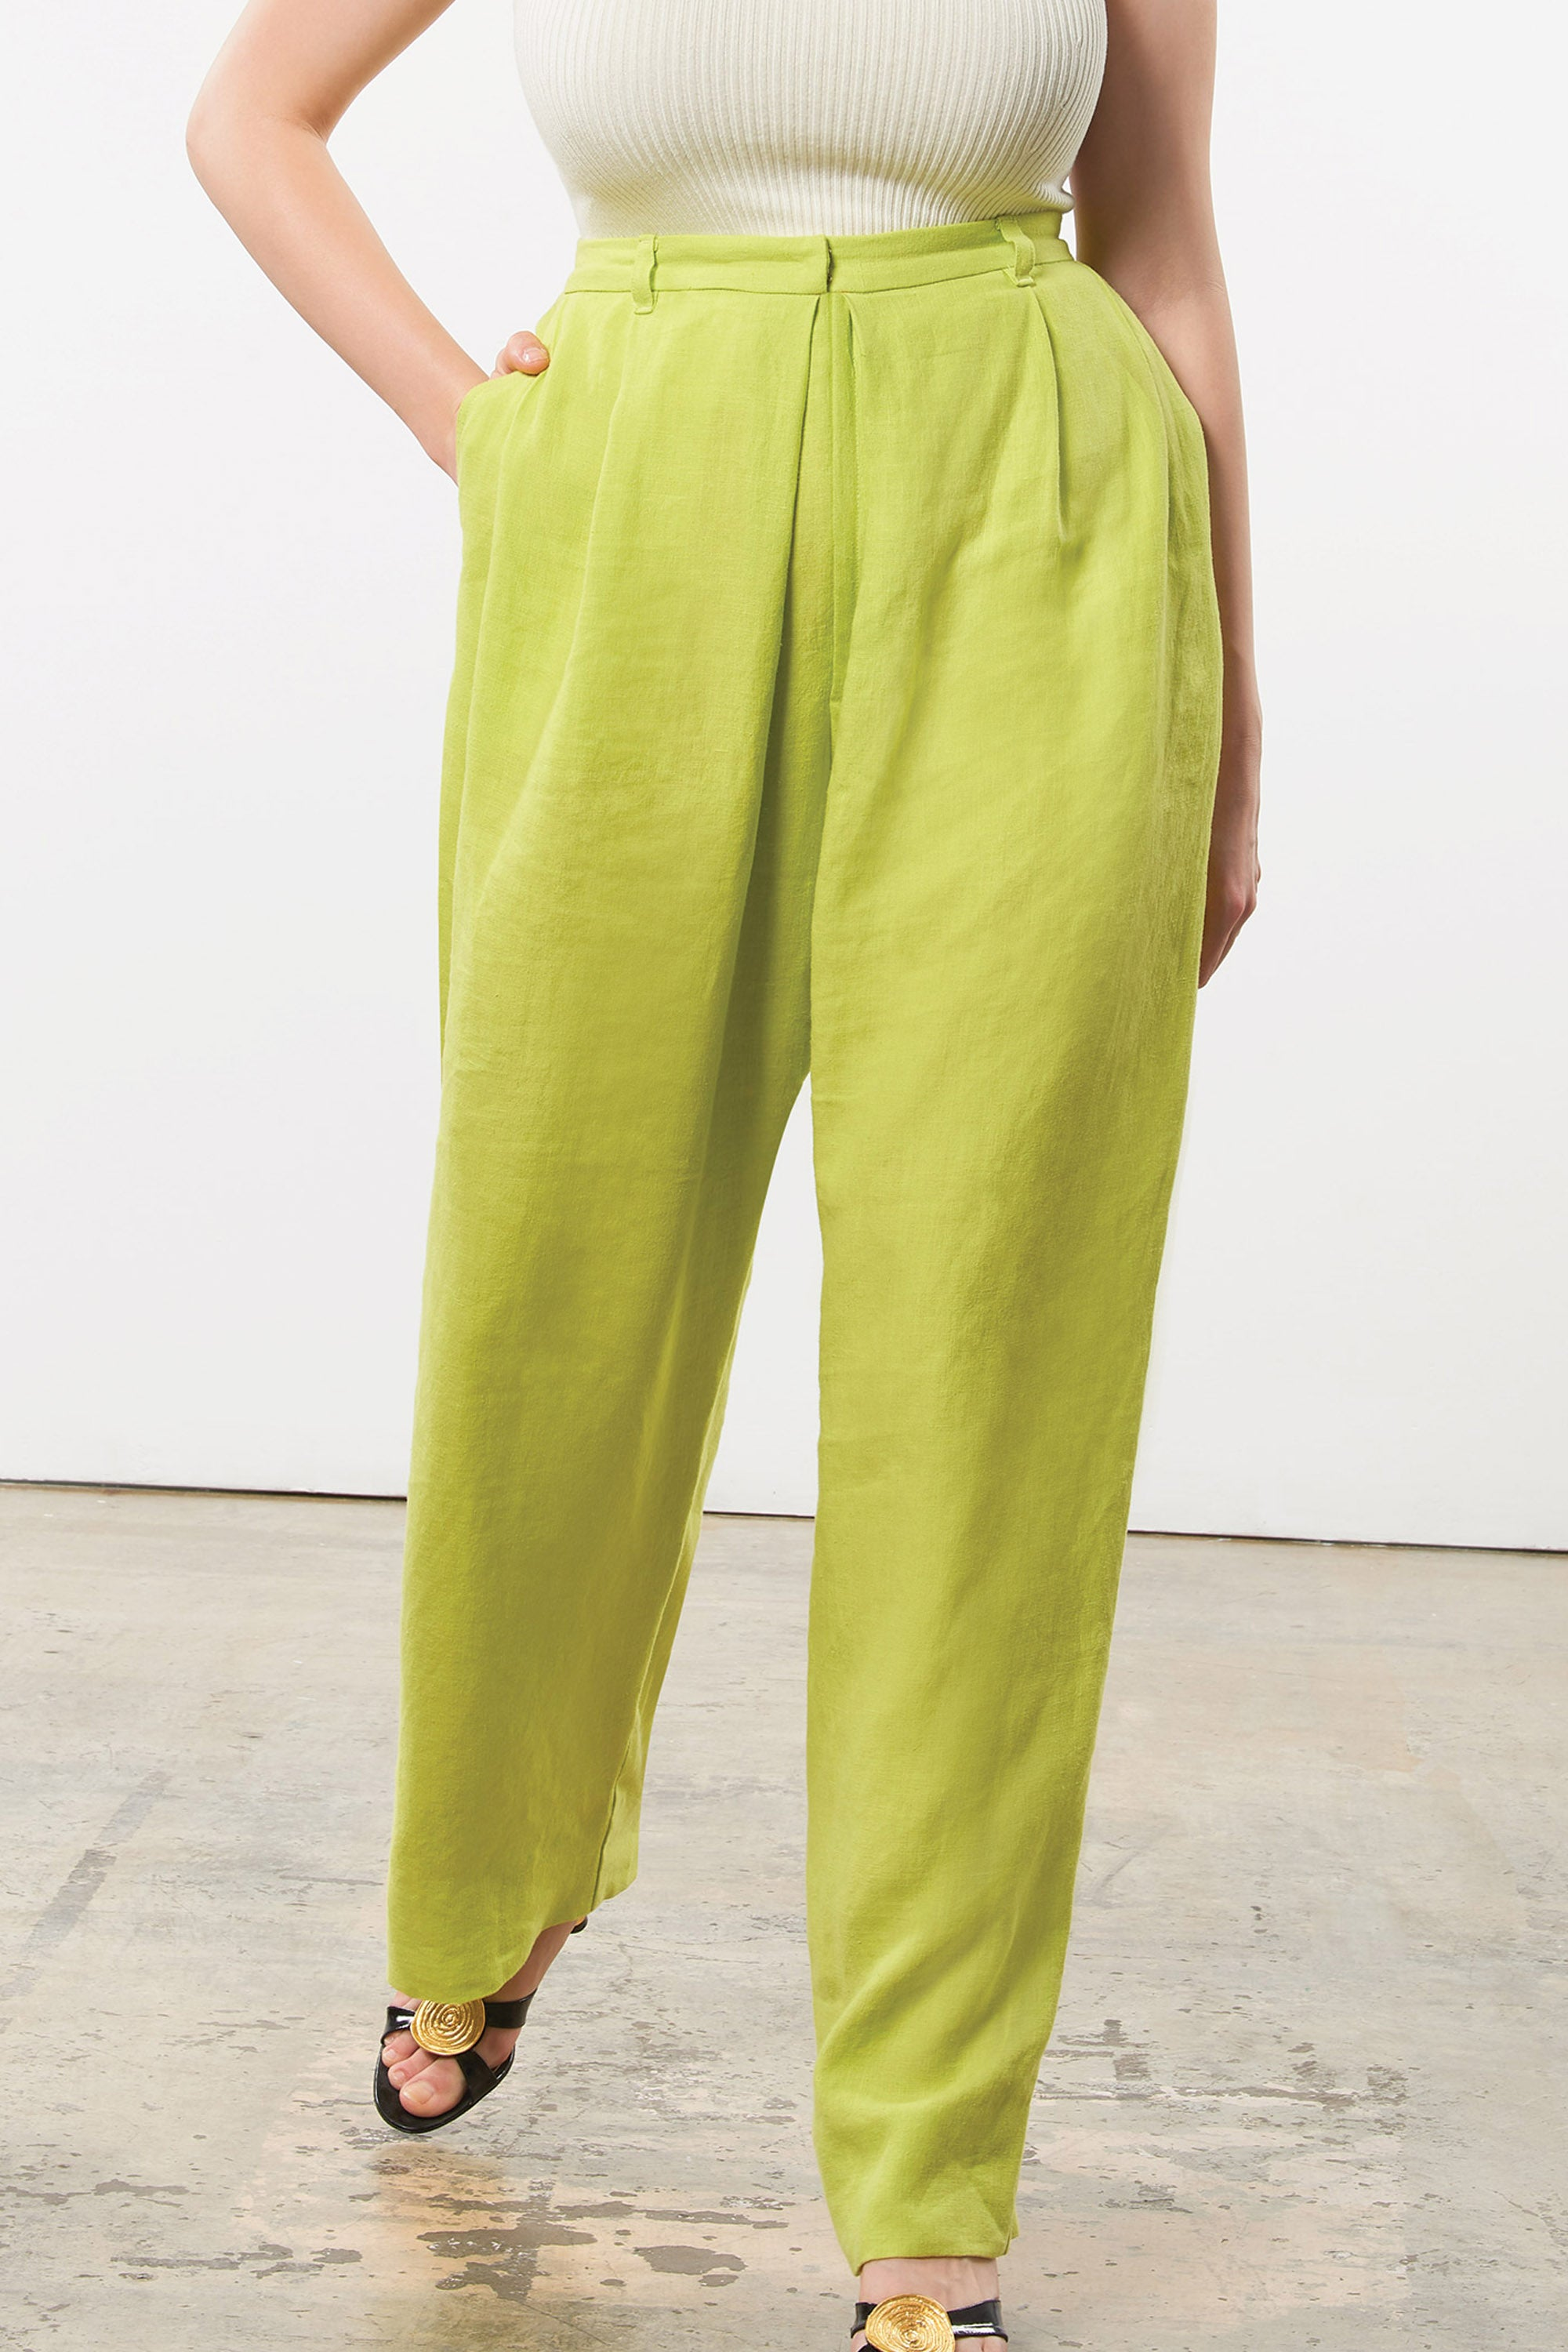 Mara Hoffman Extended Green Eldora Pant in hemp (front pocket detail)